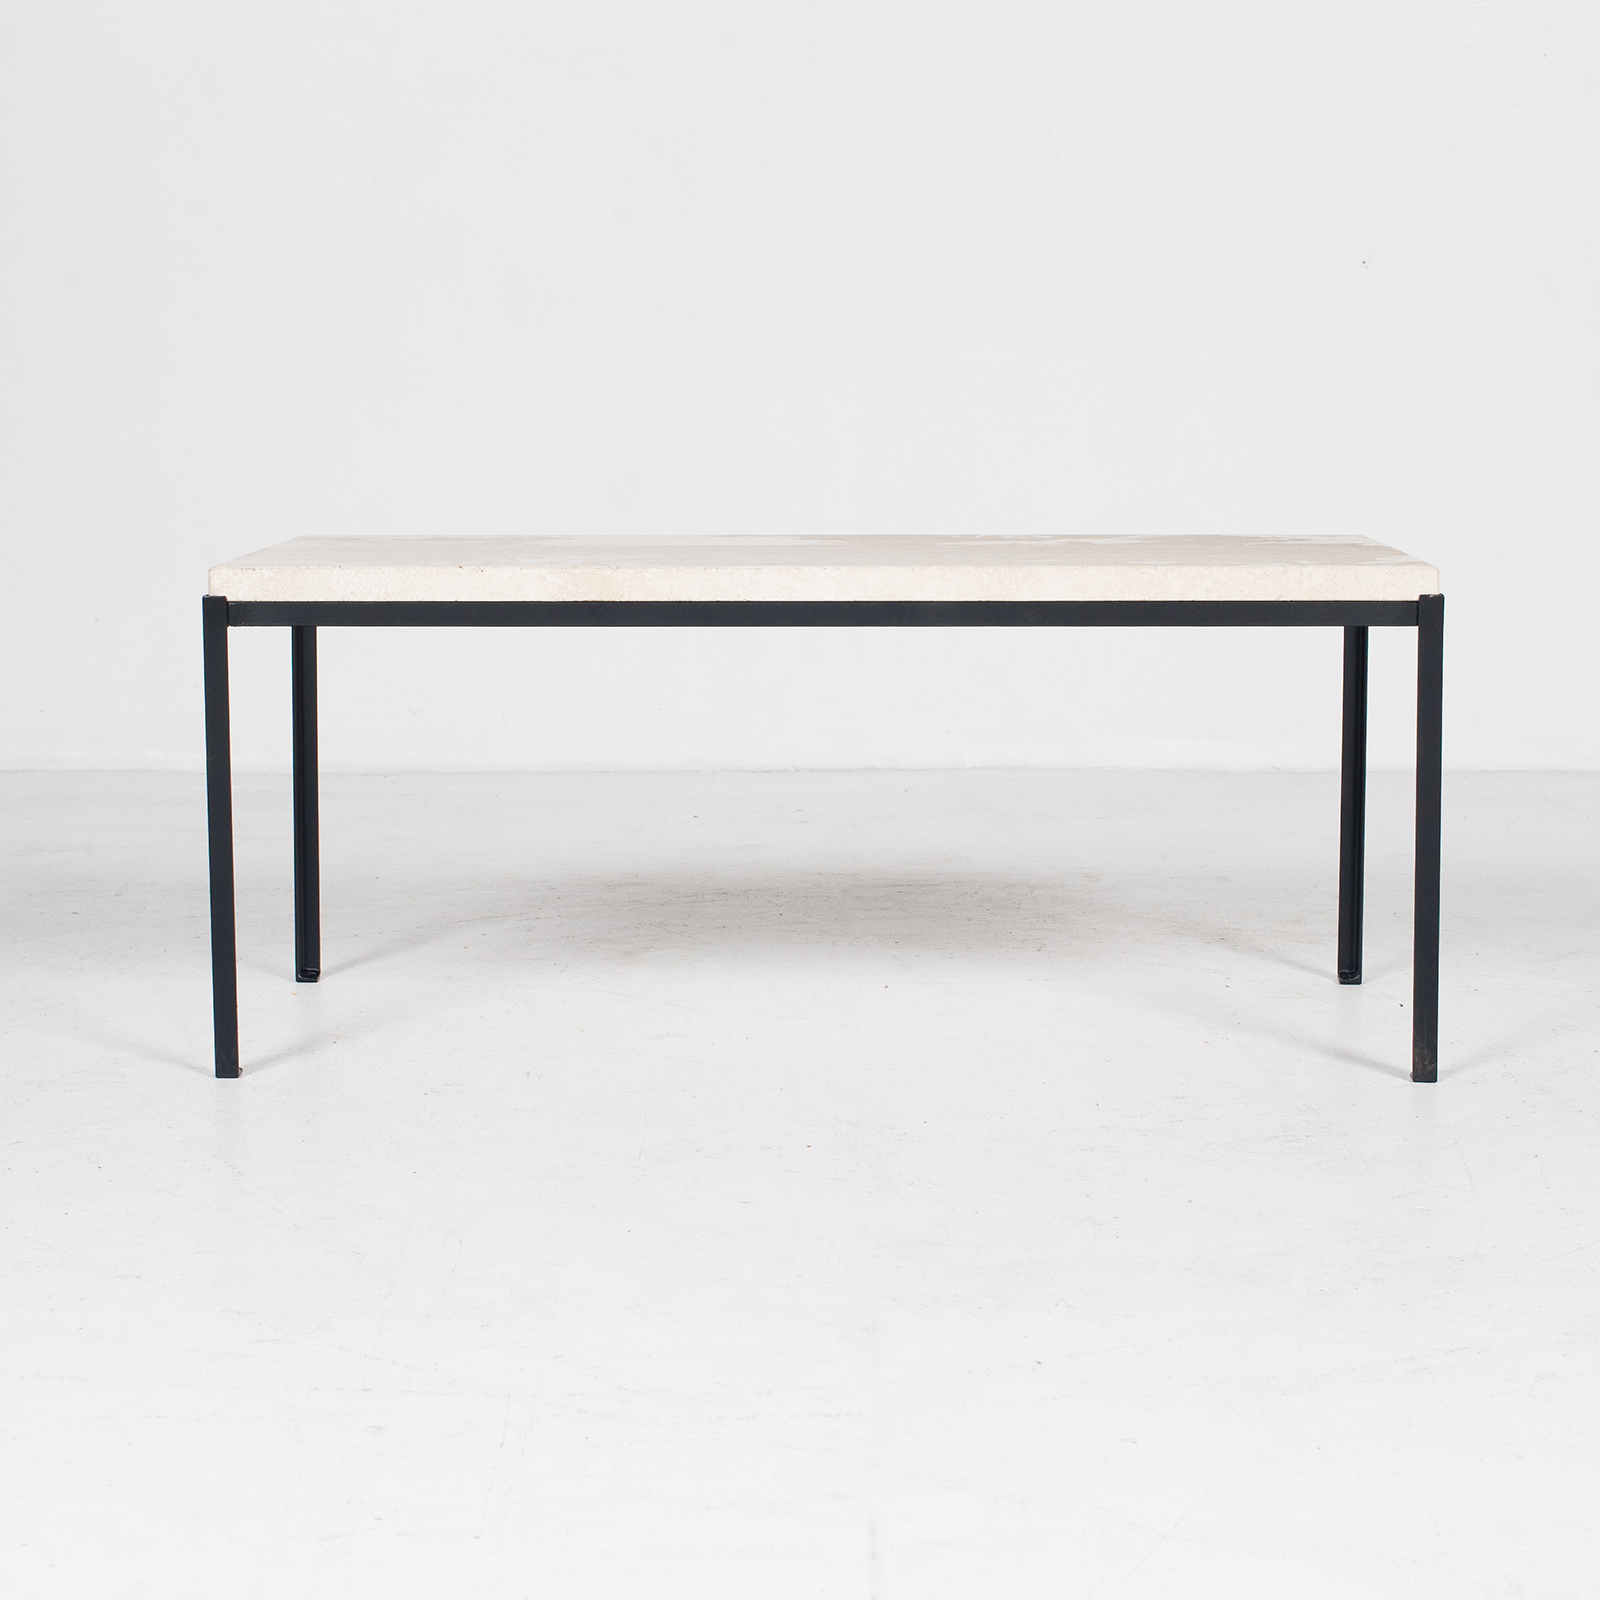 Coffee Table By Artemide With Travertine Top, 1970s, The Netherlands3